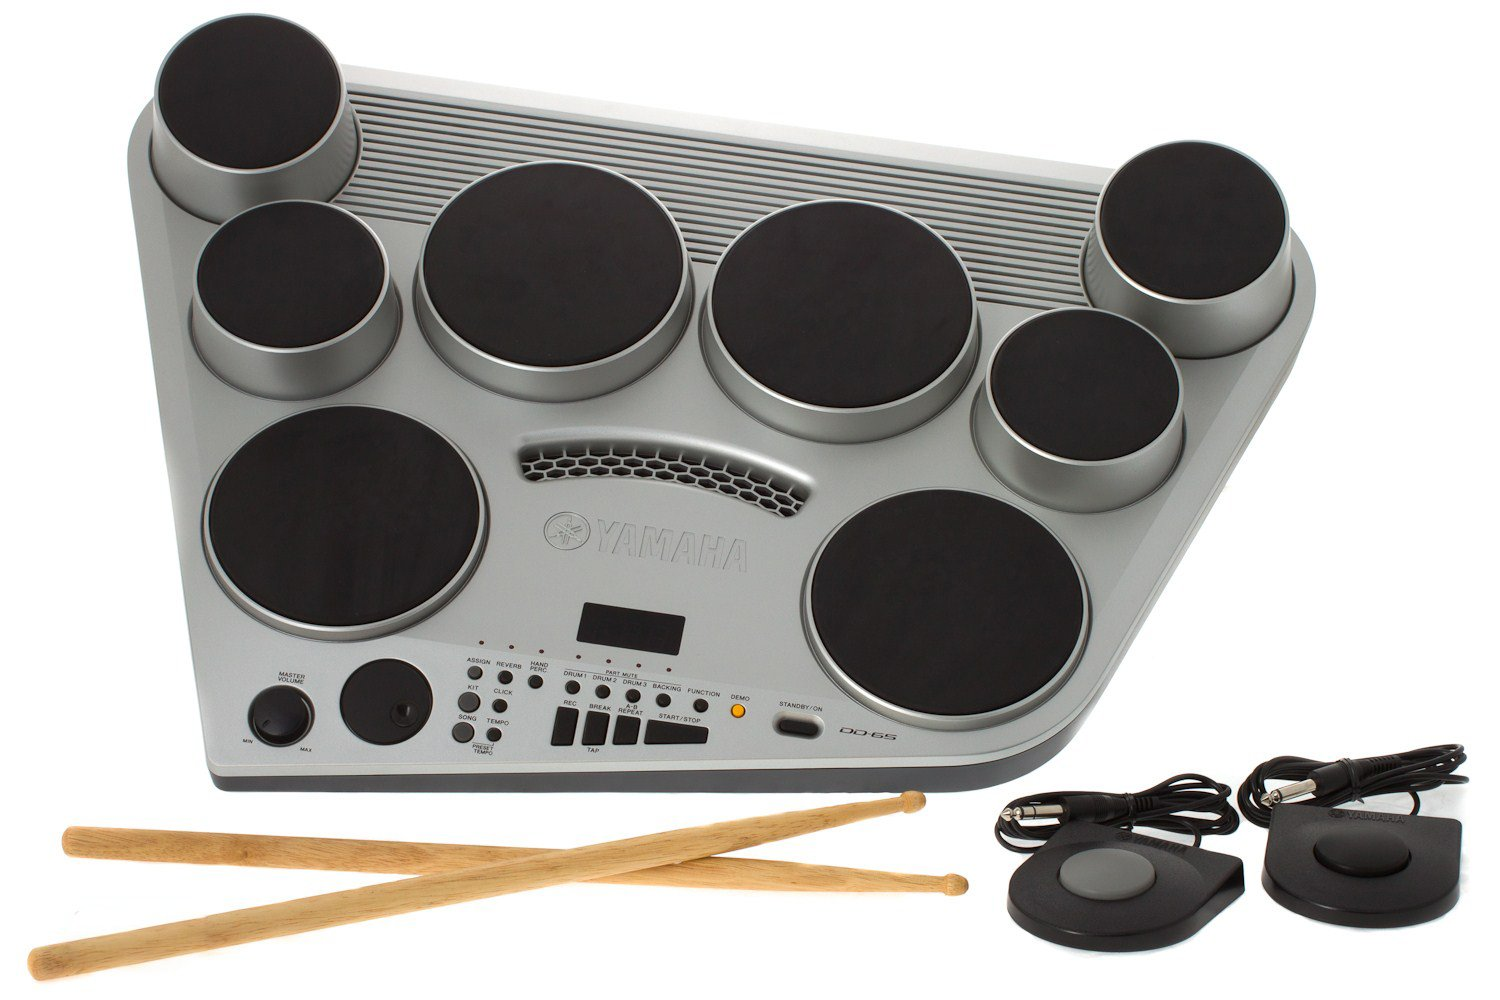 Yamaha DD65 Electronic Drum Pad Premium Package with Headphones, Power Supply, Drum Sticks, and 2 Foot Pedals Yamaha Corporation of America DD65 PAK